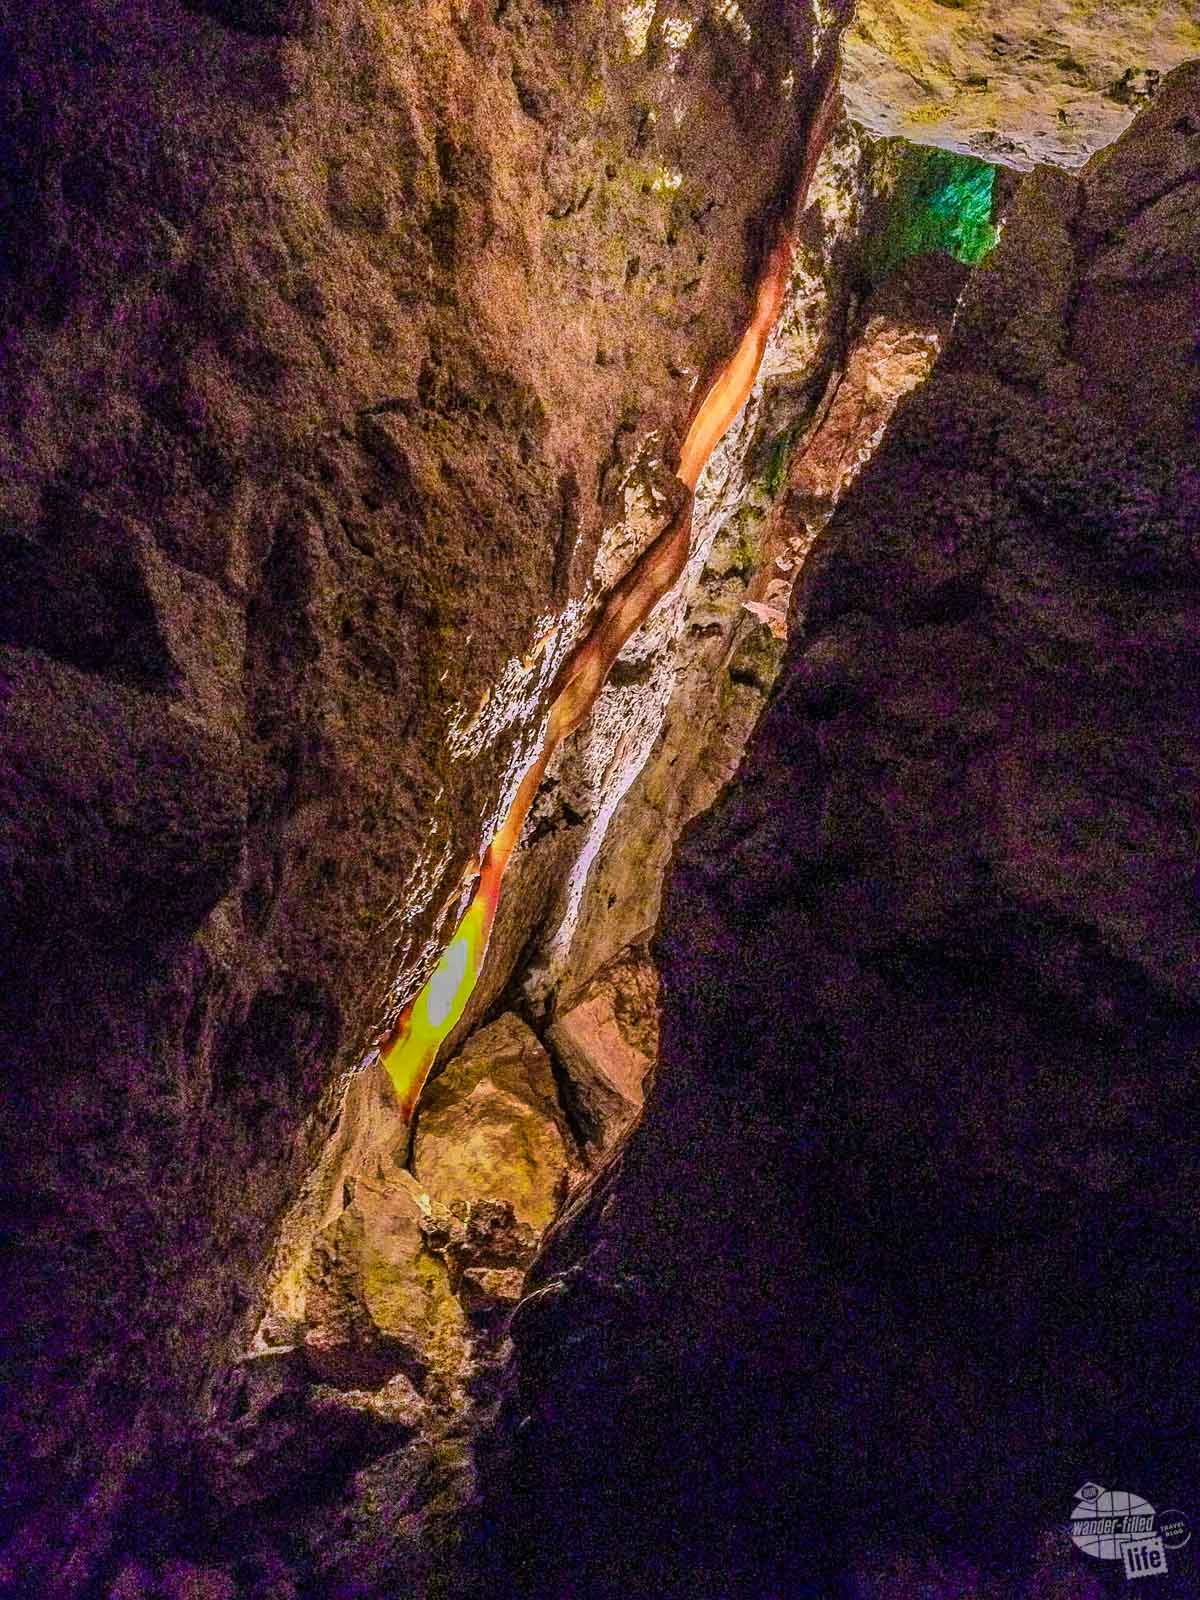 Cave Bacon in Jewel Cave National Monument.